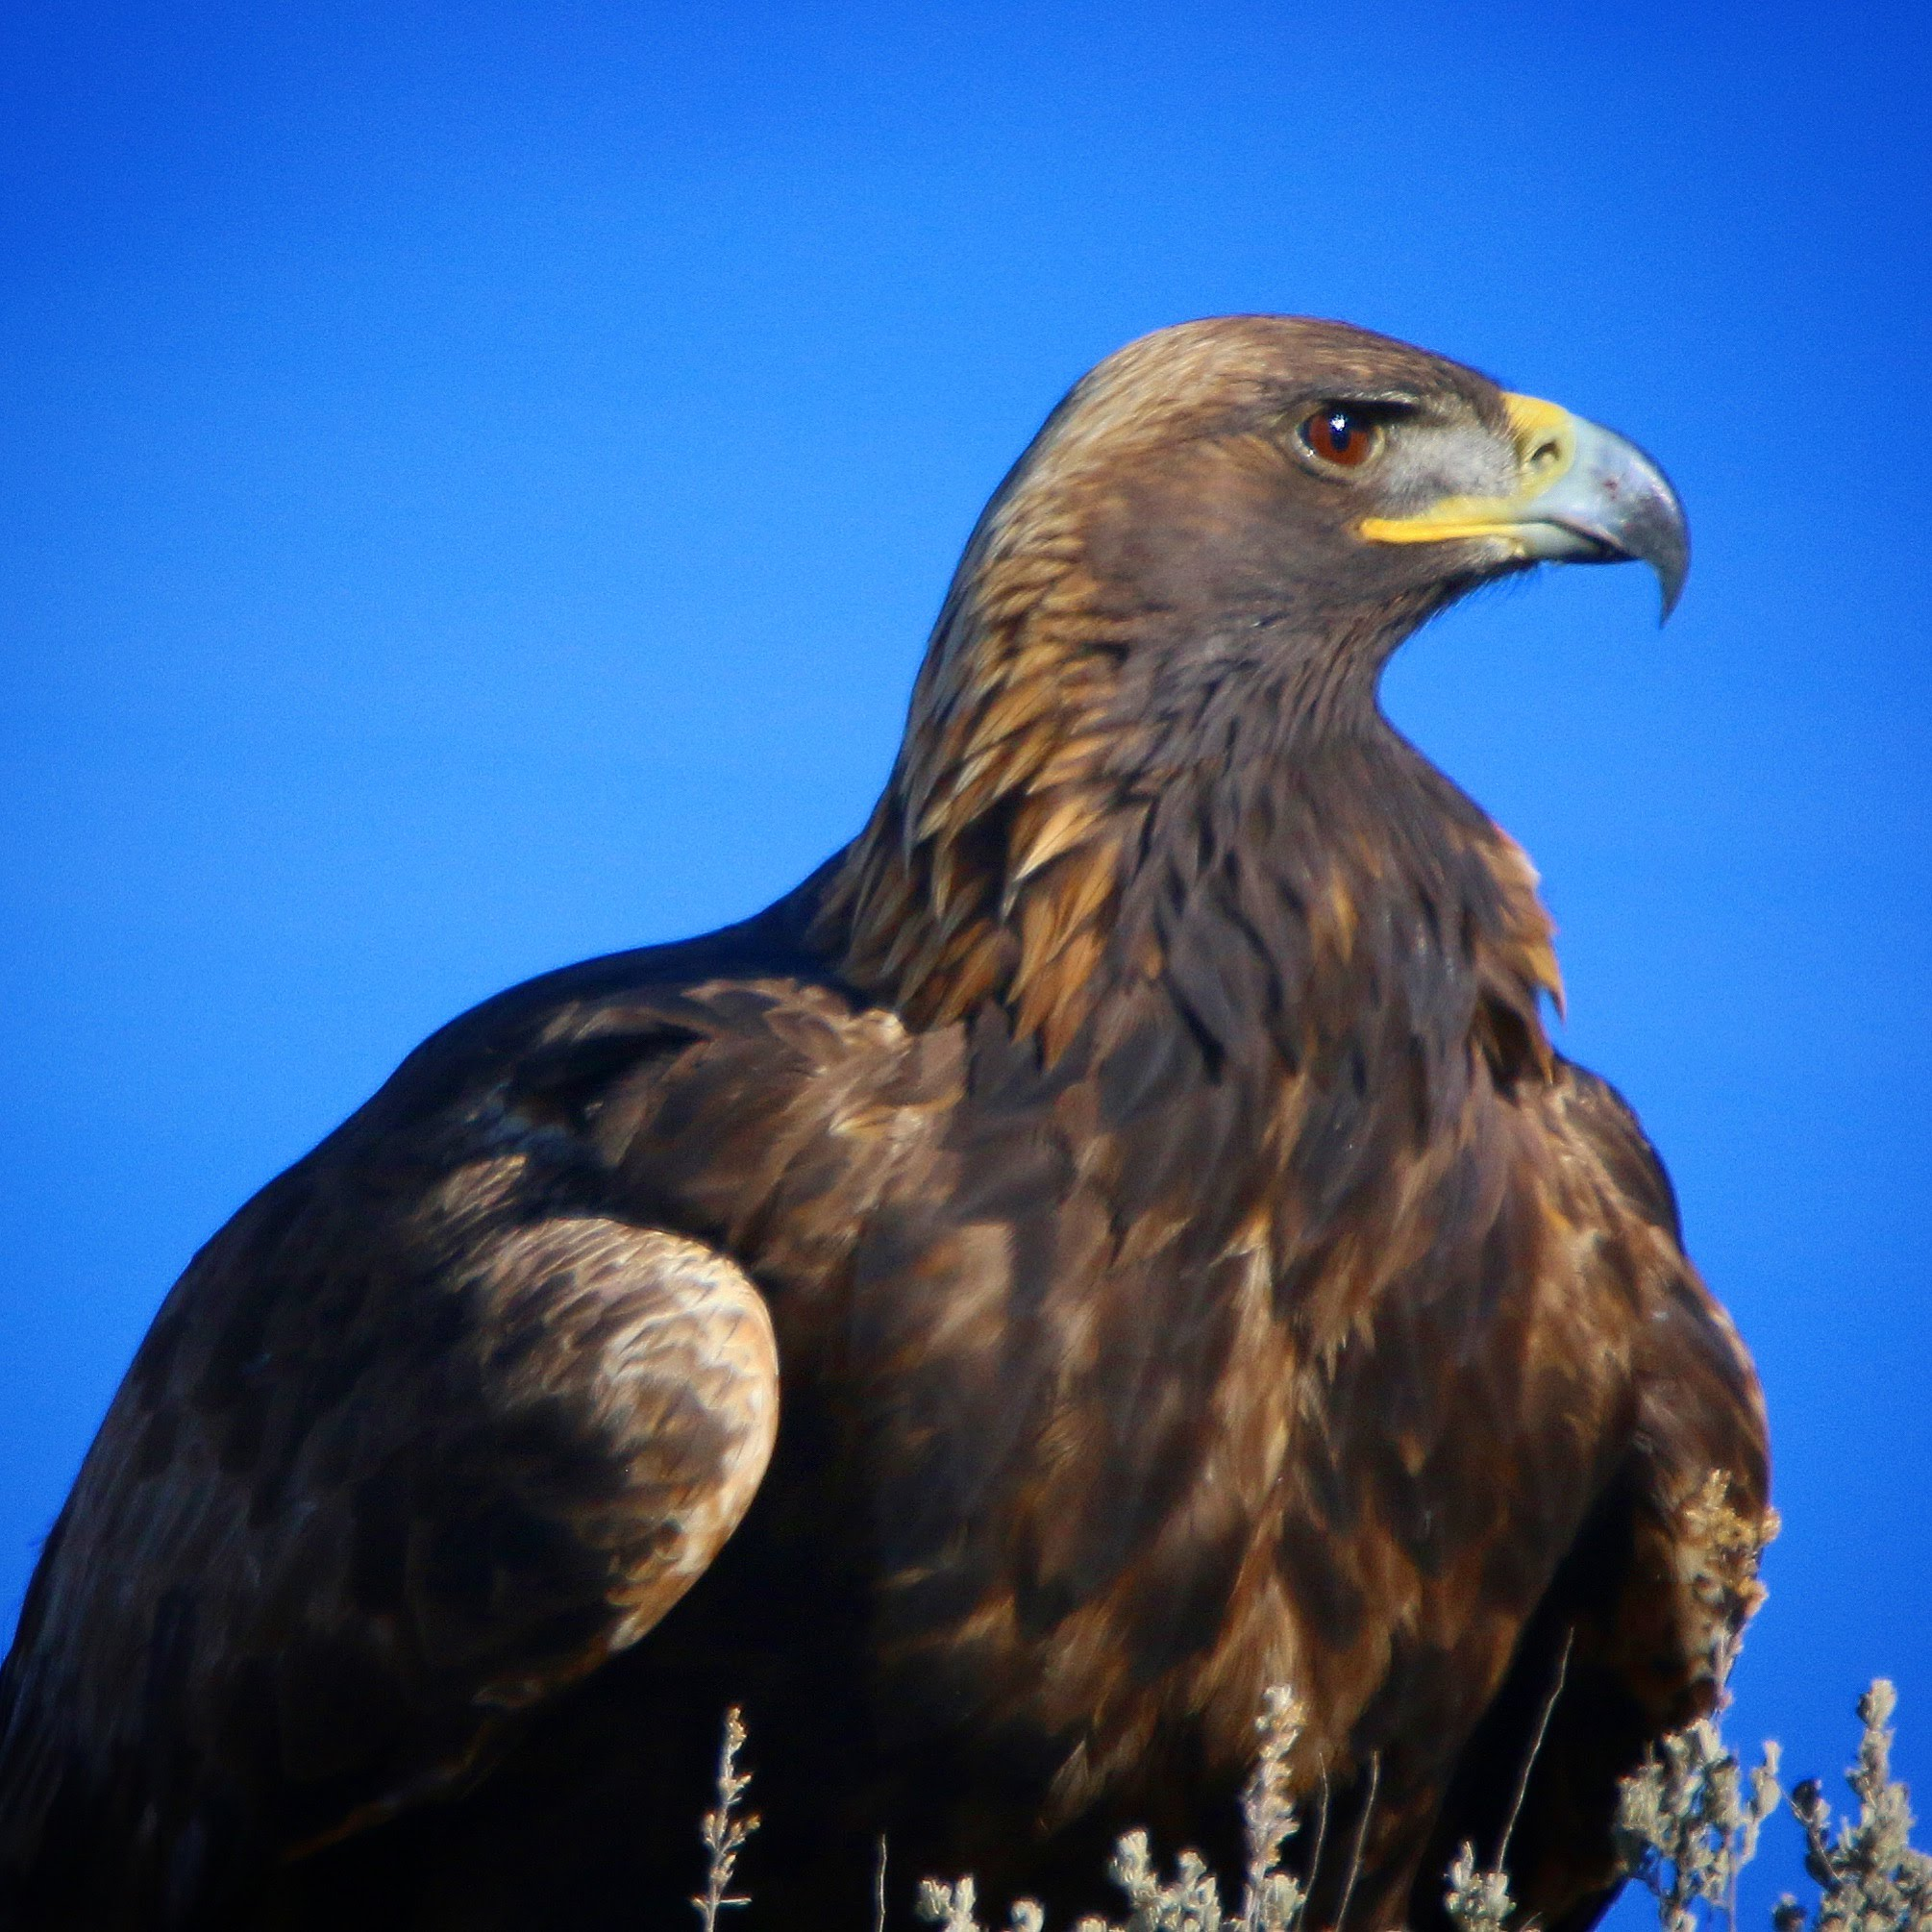 Golden Eagle by Jeff Kietzmann